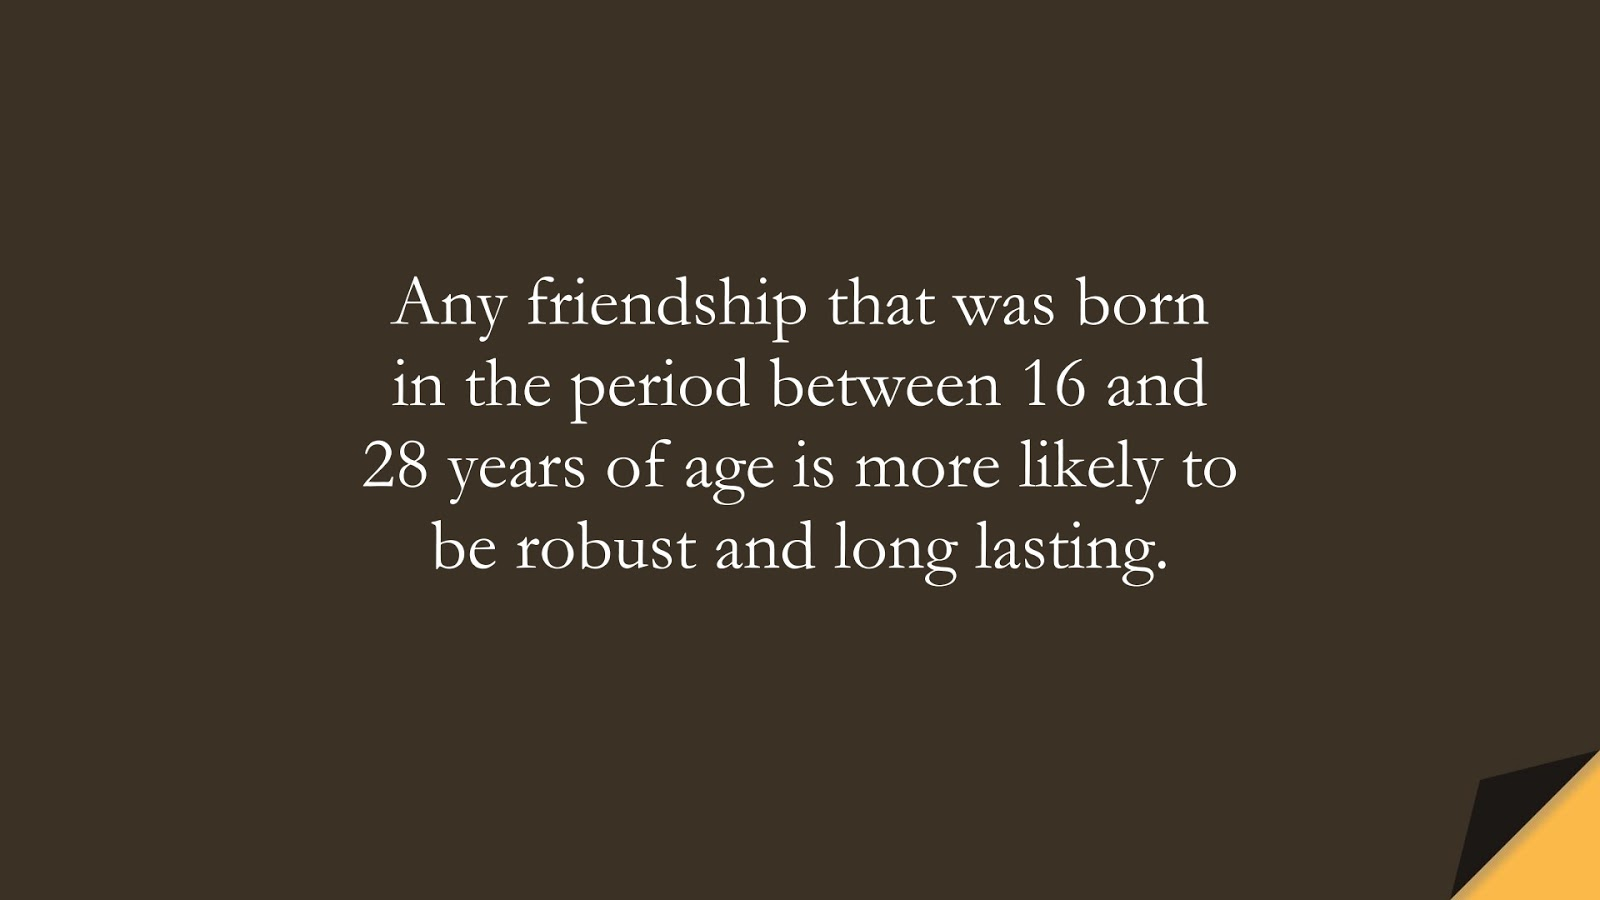 Any friendship that was born in the period between 16 and 28 years of age is more likely to be robust and long lasting.FALSE